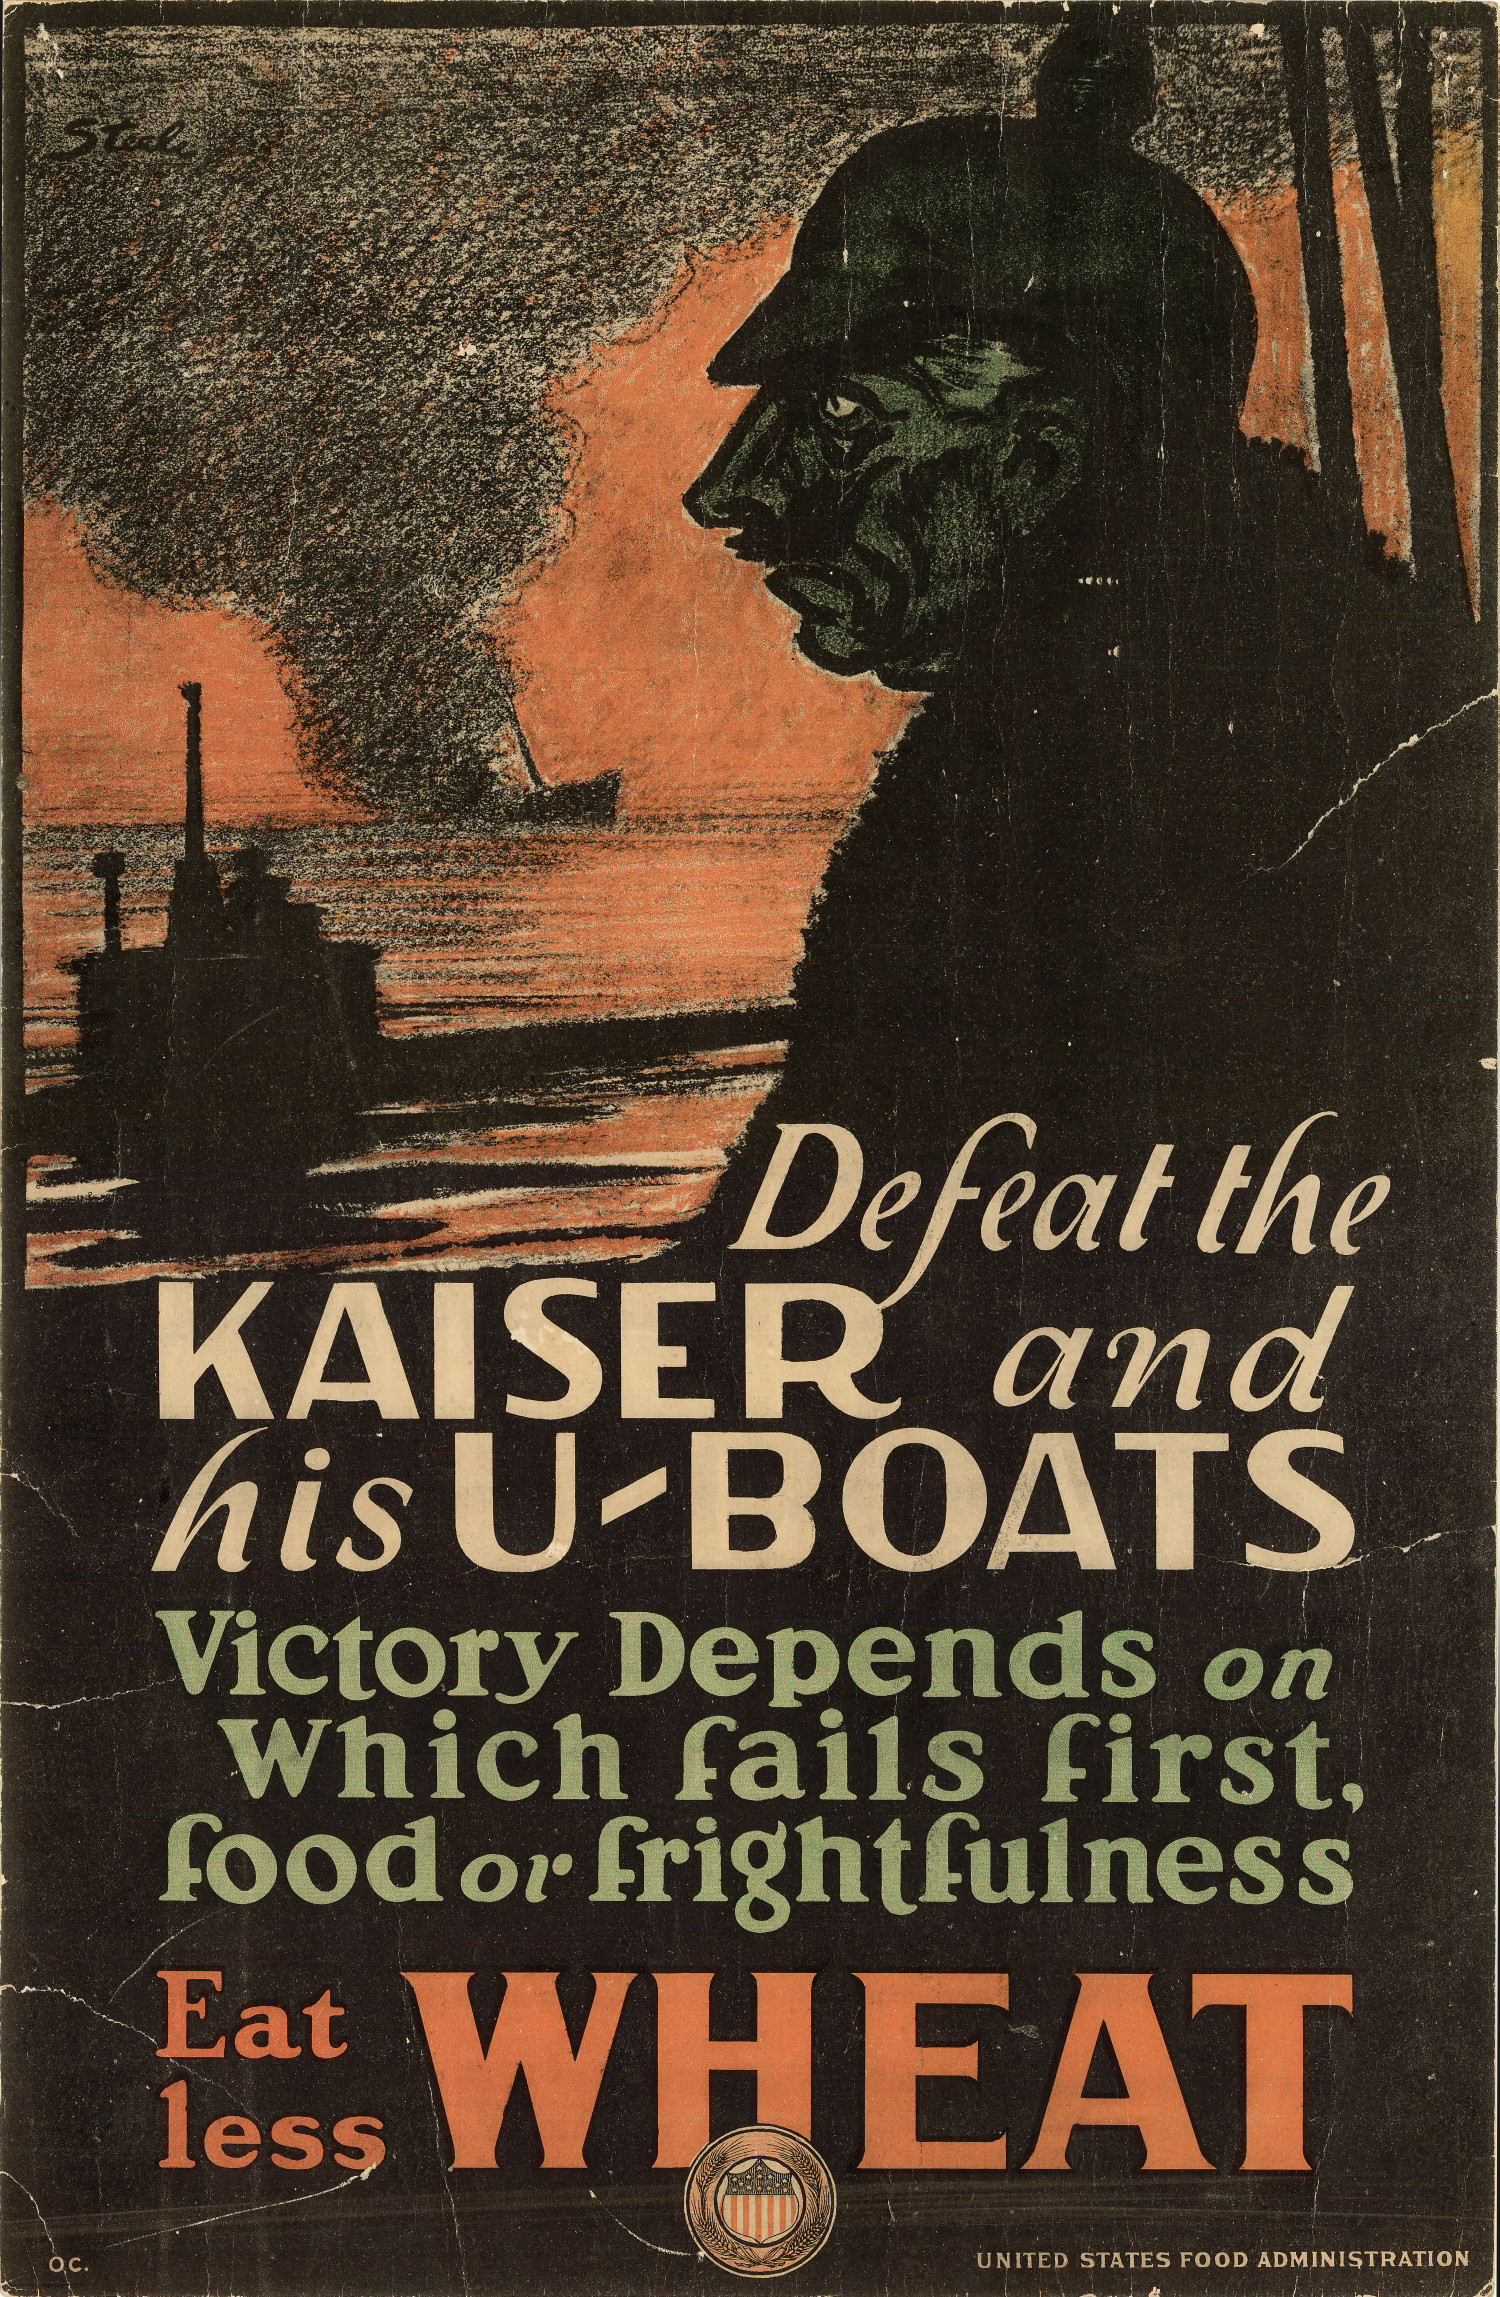 Defeat the Kaiser and his U boats victory depends on